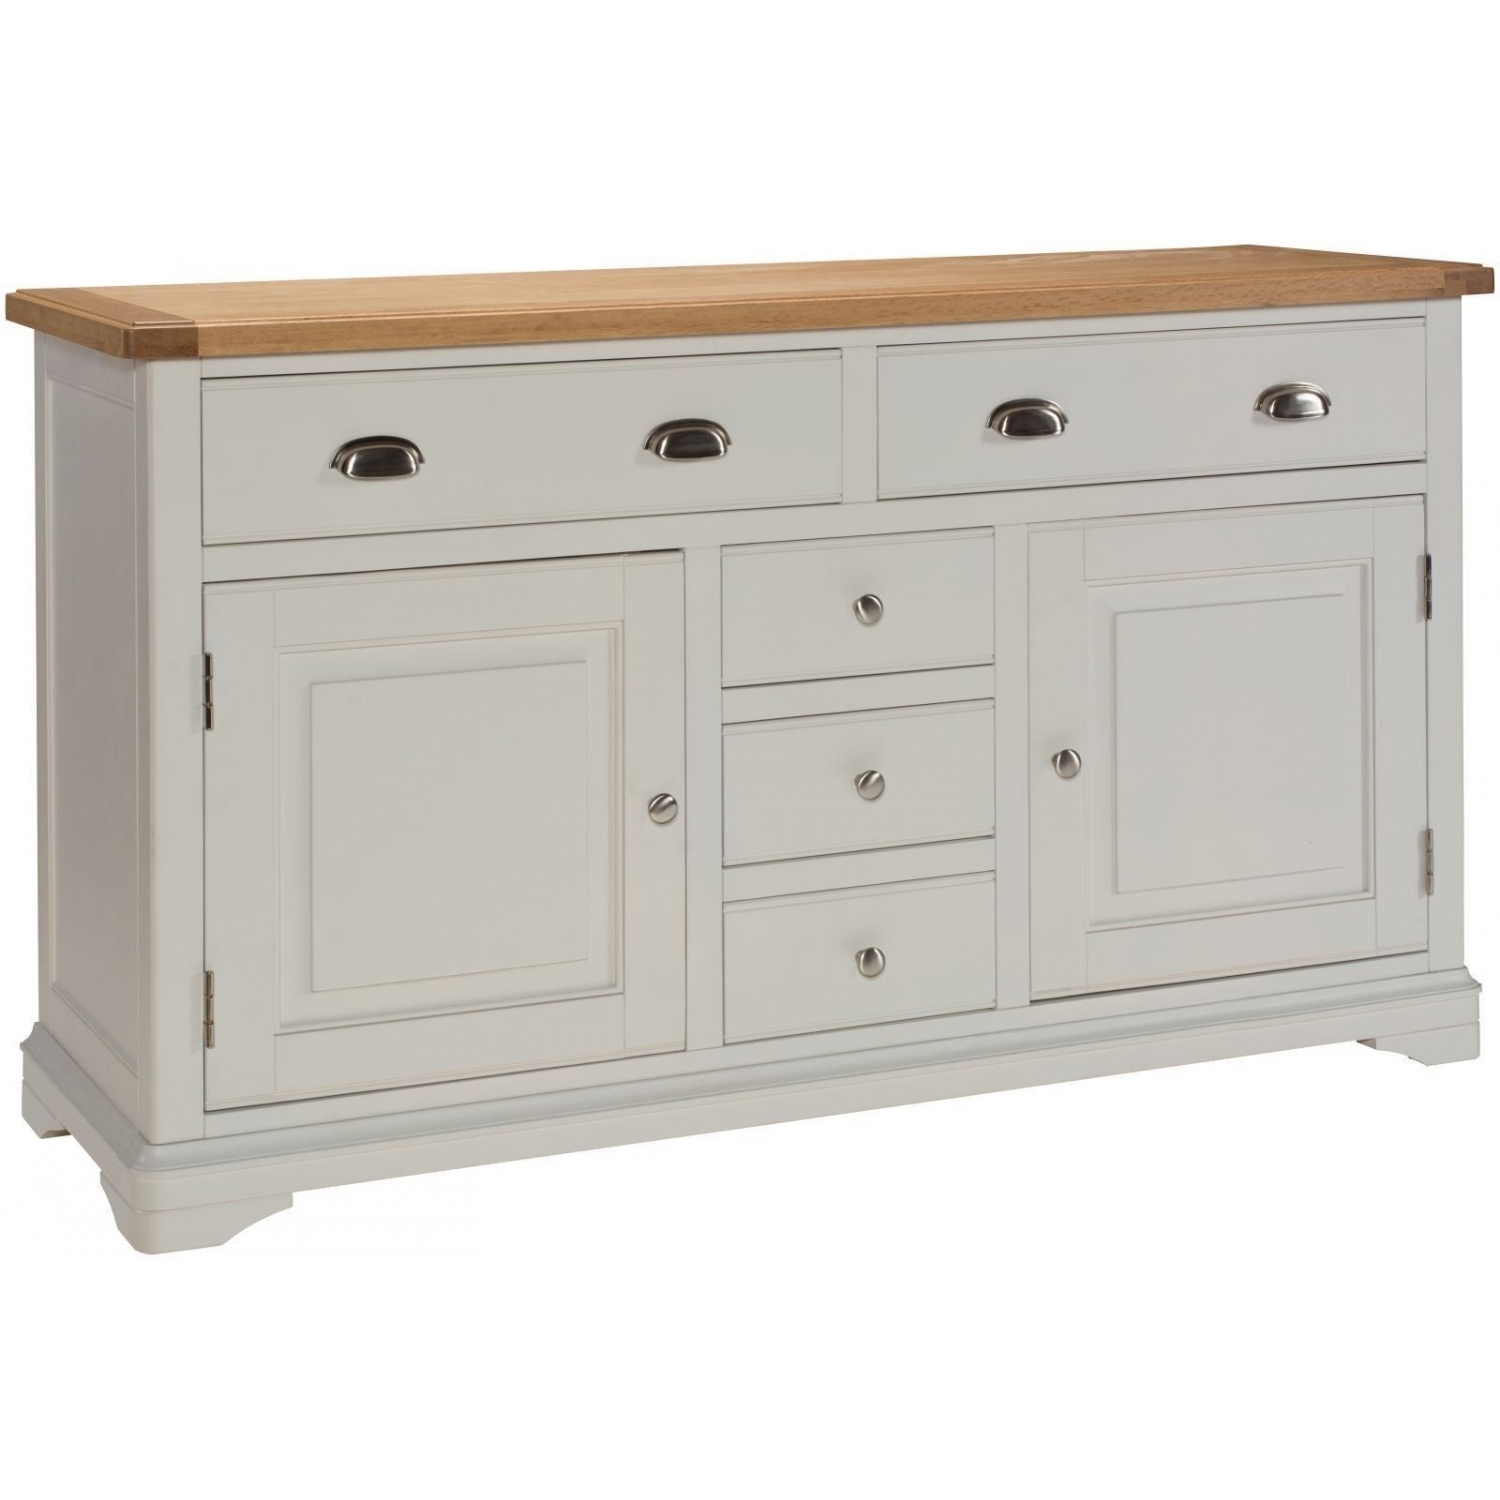 Dillon oak grey painted furniture large living dining room for Painted buffet sideboard